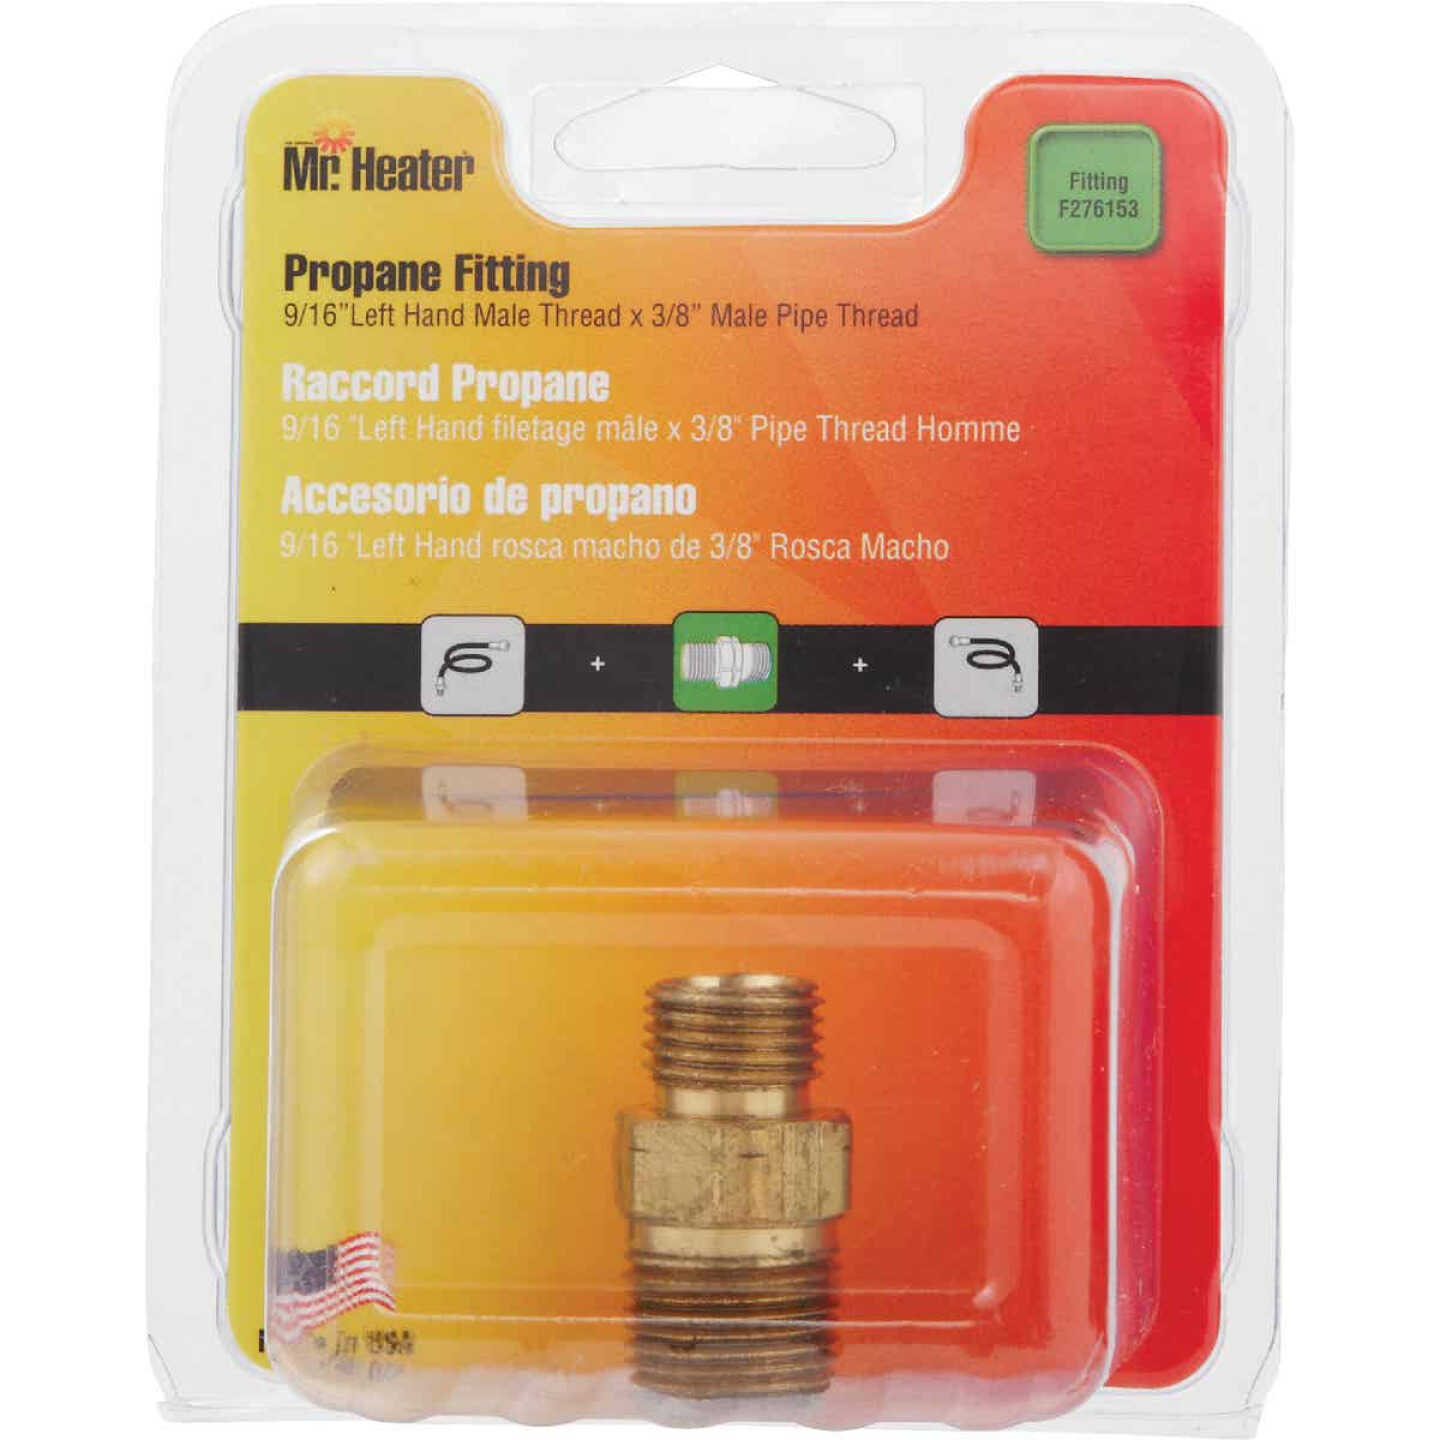 MR. HEATER 3/8 In. MPT x 9/16 In. LHMT Brass Male Pipe Fitting Image 2